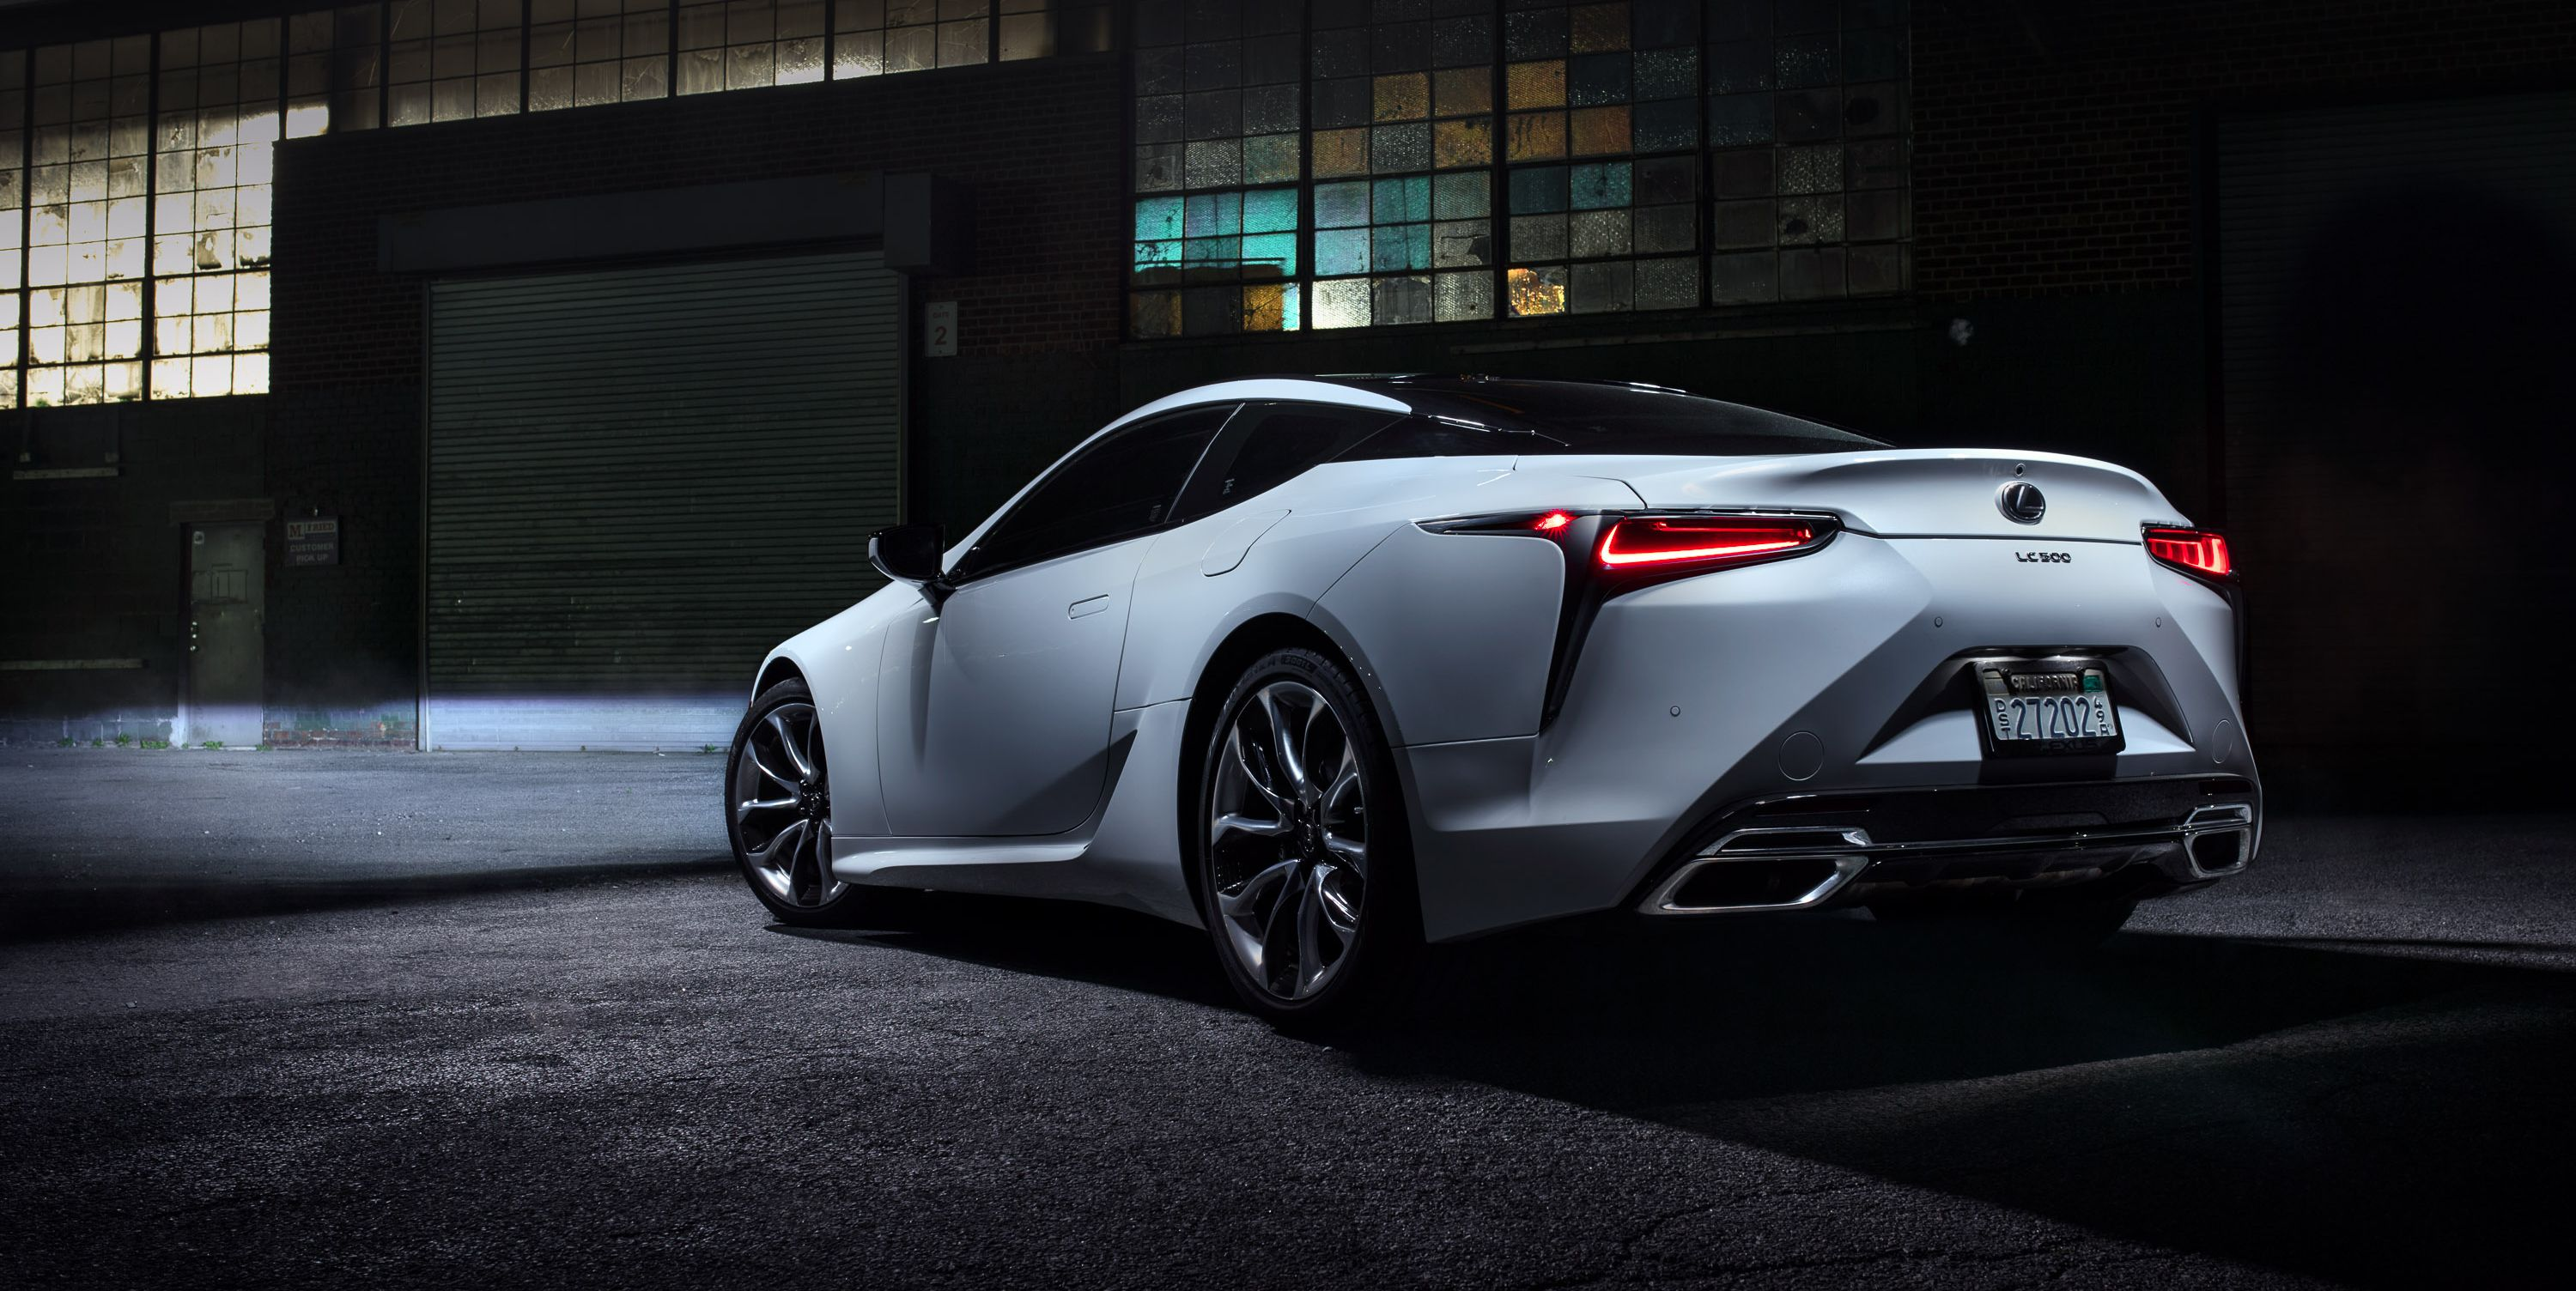 Why The Lexus Lc500 Is The Perfect Halo Car